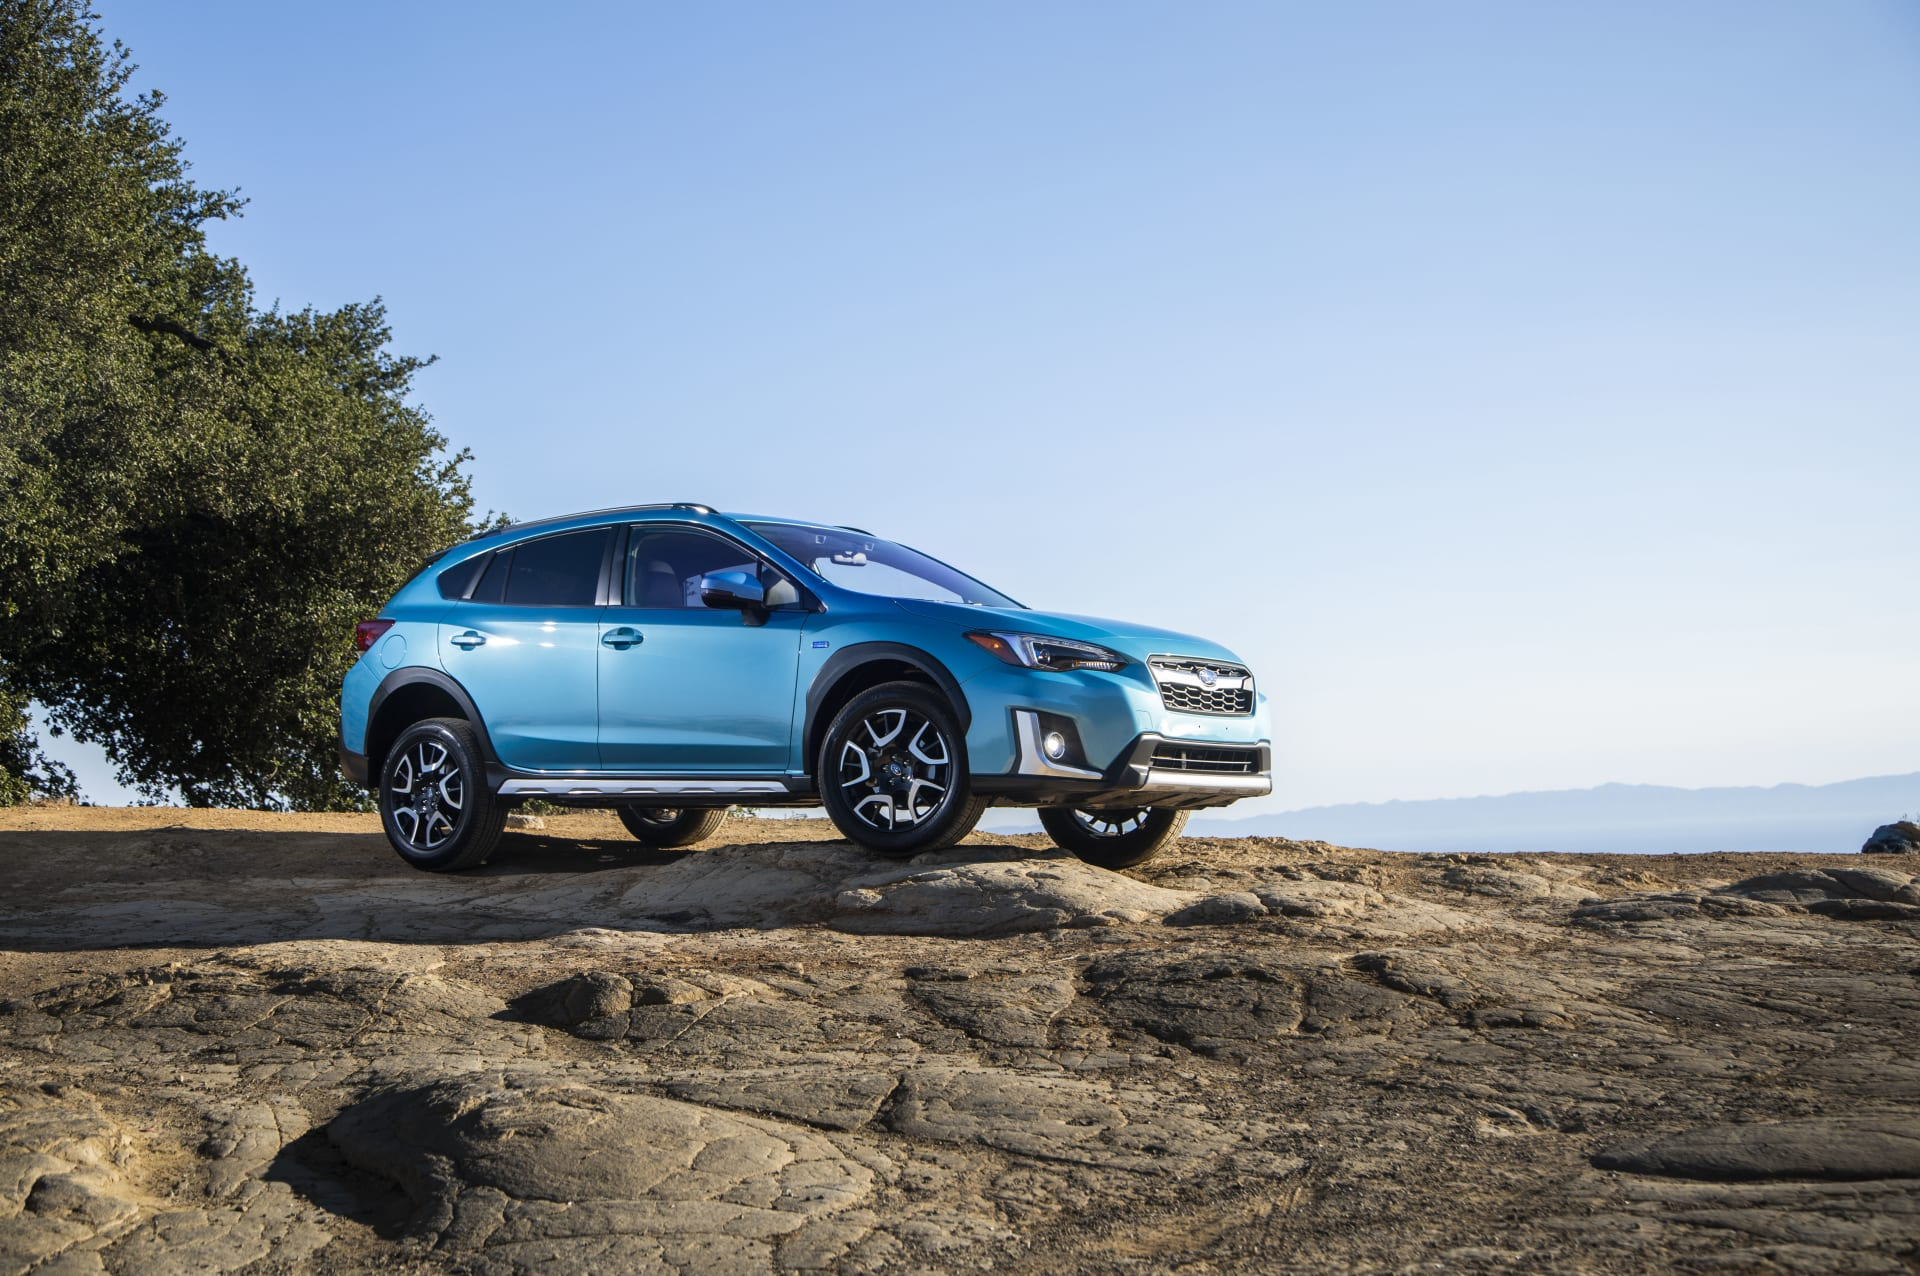 Top 5 Reviews and Videos of the Week: 2020 Subaru Outback Overpowered by Crosstrek Hybrid